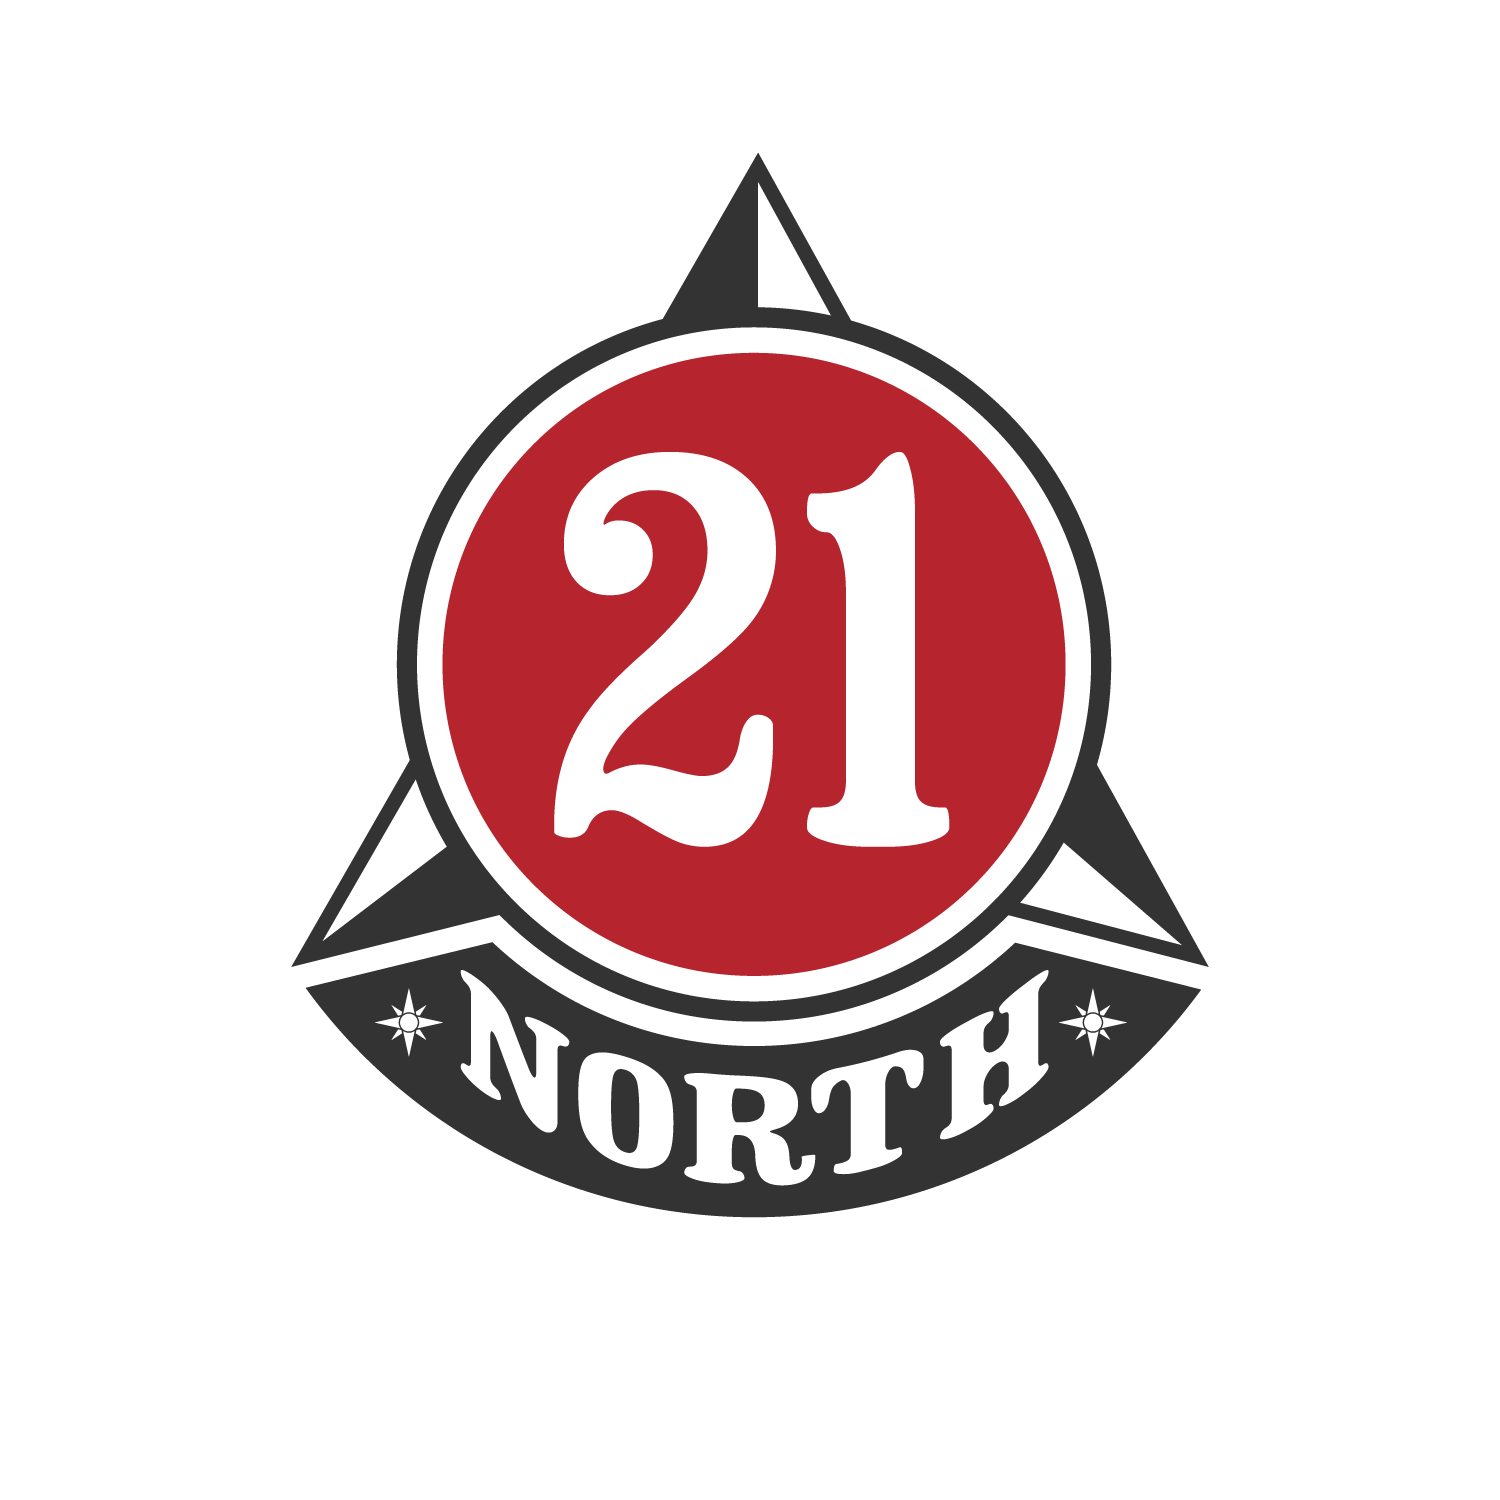 21 North Eatery + Cellar